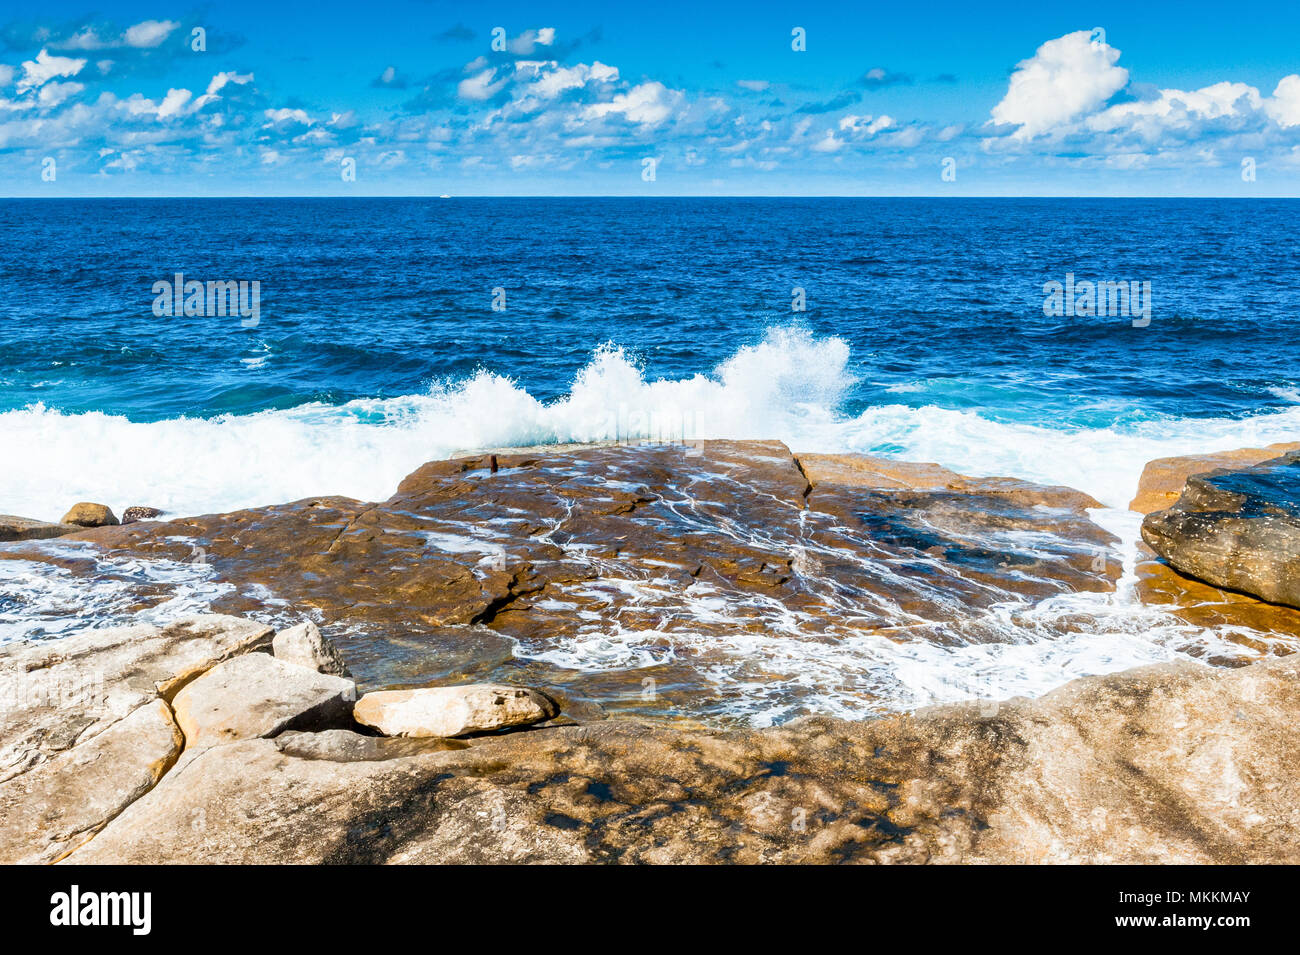 The stunning views along the famous Coogee Beach walk near to Bondi Beach, New South Wales, Australia. Waves crashing on the rocks with a beautiful bl Stock Photo